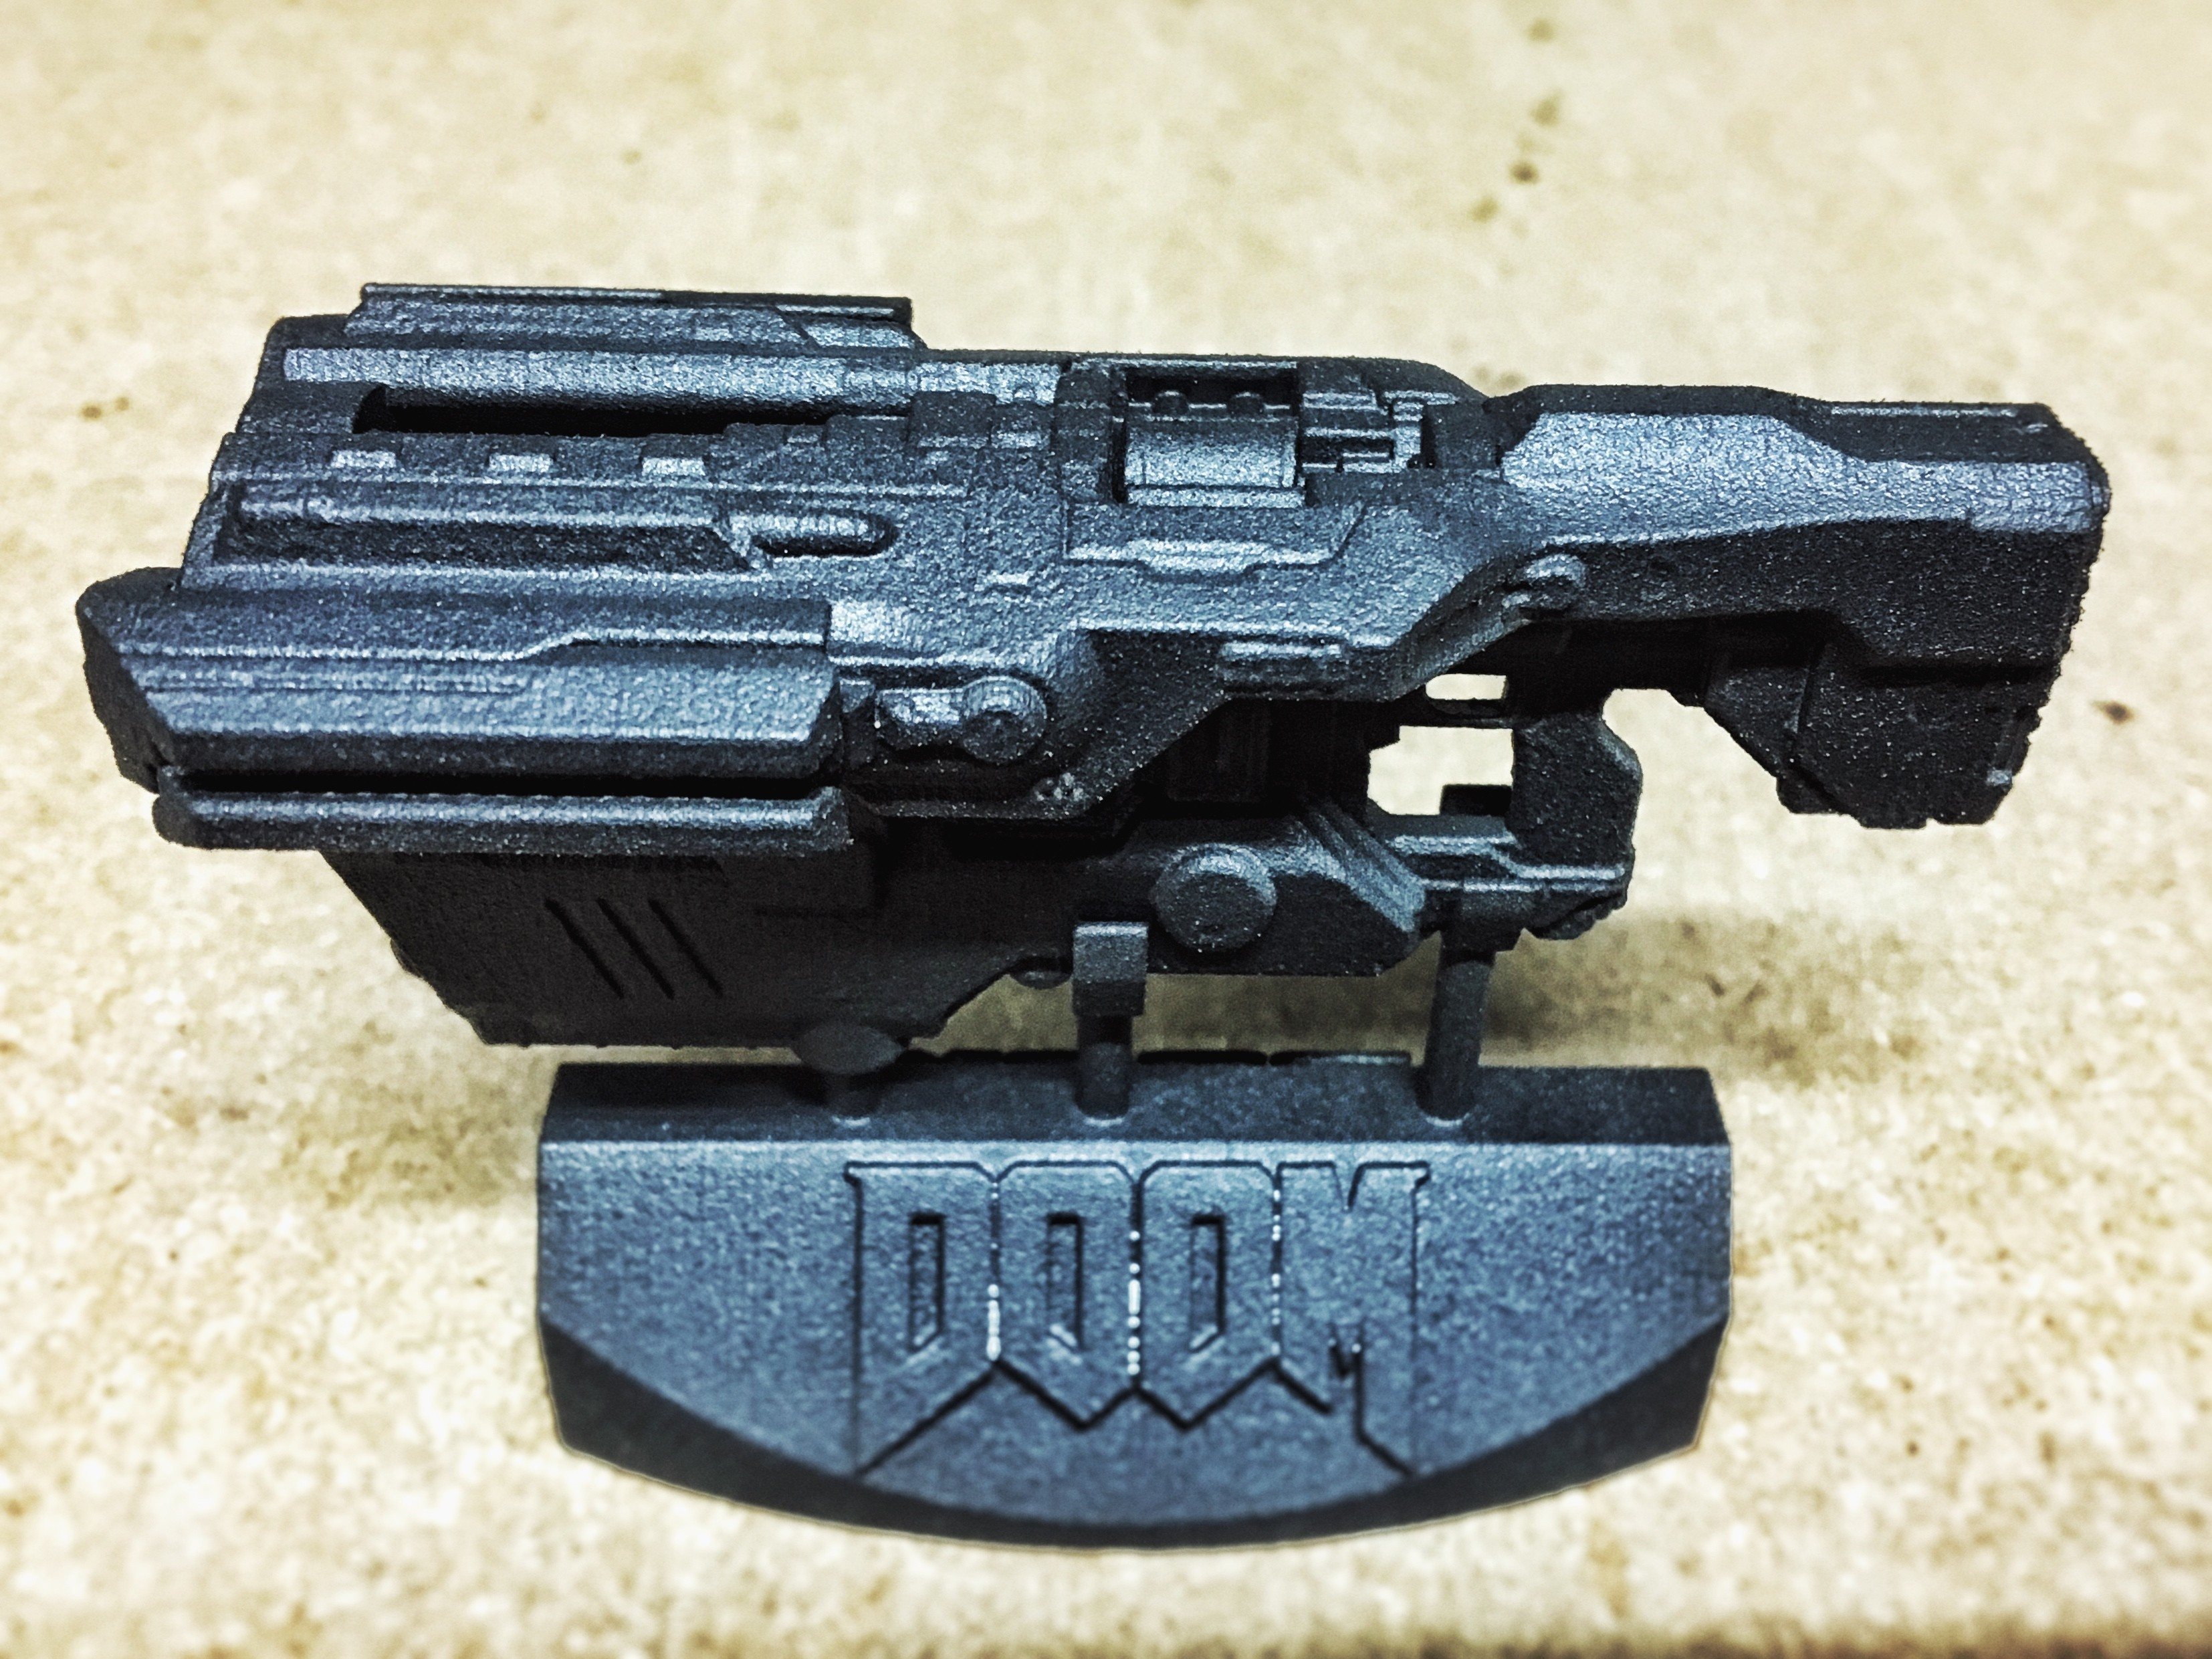 image-5.jpeg Download free STL file Doom (2016) BFG9000 gun & display stand • 3D print design, Solid_Alexei